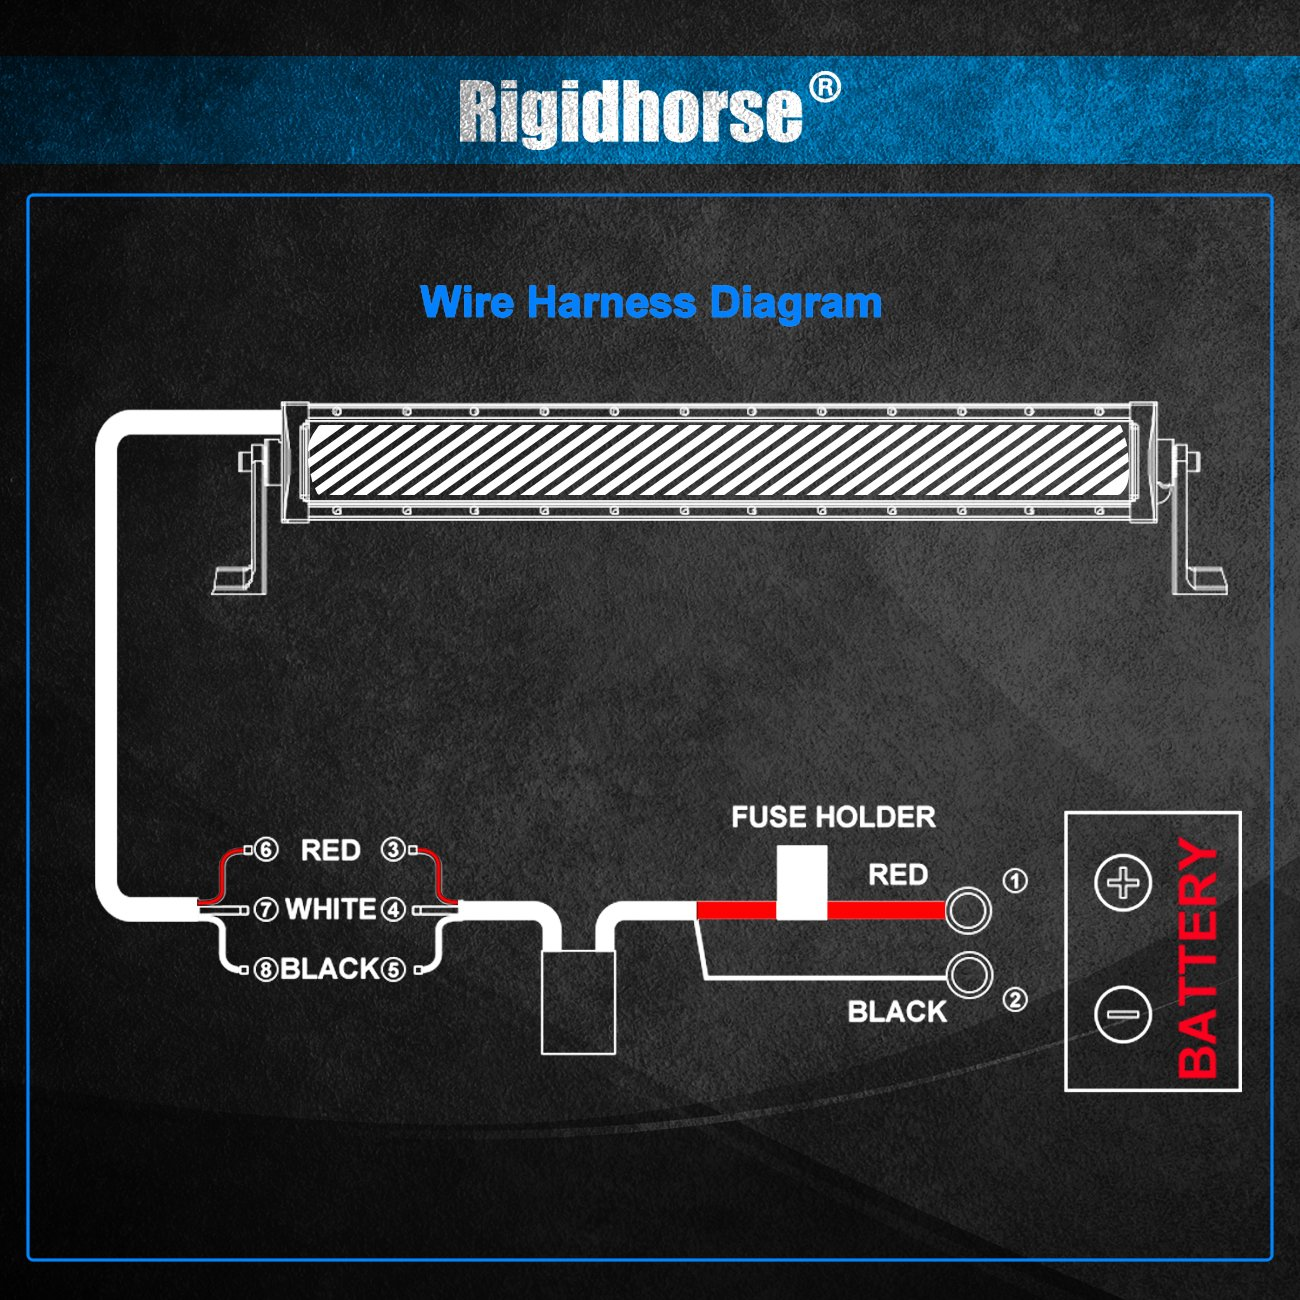 Led Light Bar Wiring Harness Rigidhorse Remote Control Golf Cart Diagram Kit For Multi Color Universal Fitment Accessories